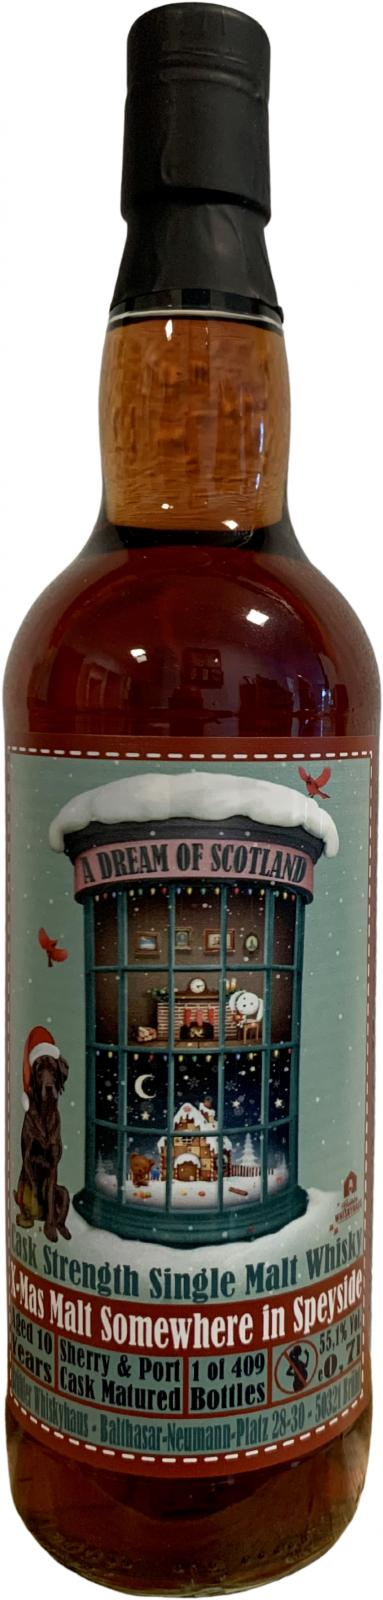 Somewhere in Speyside X-Mas Malt